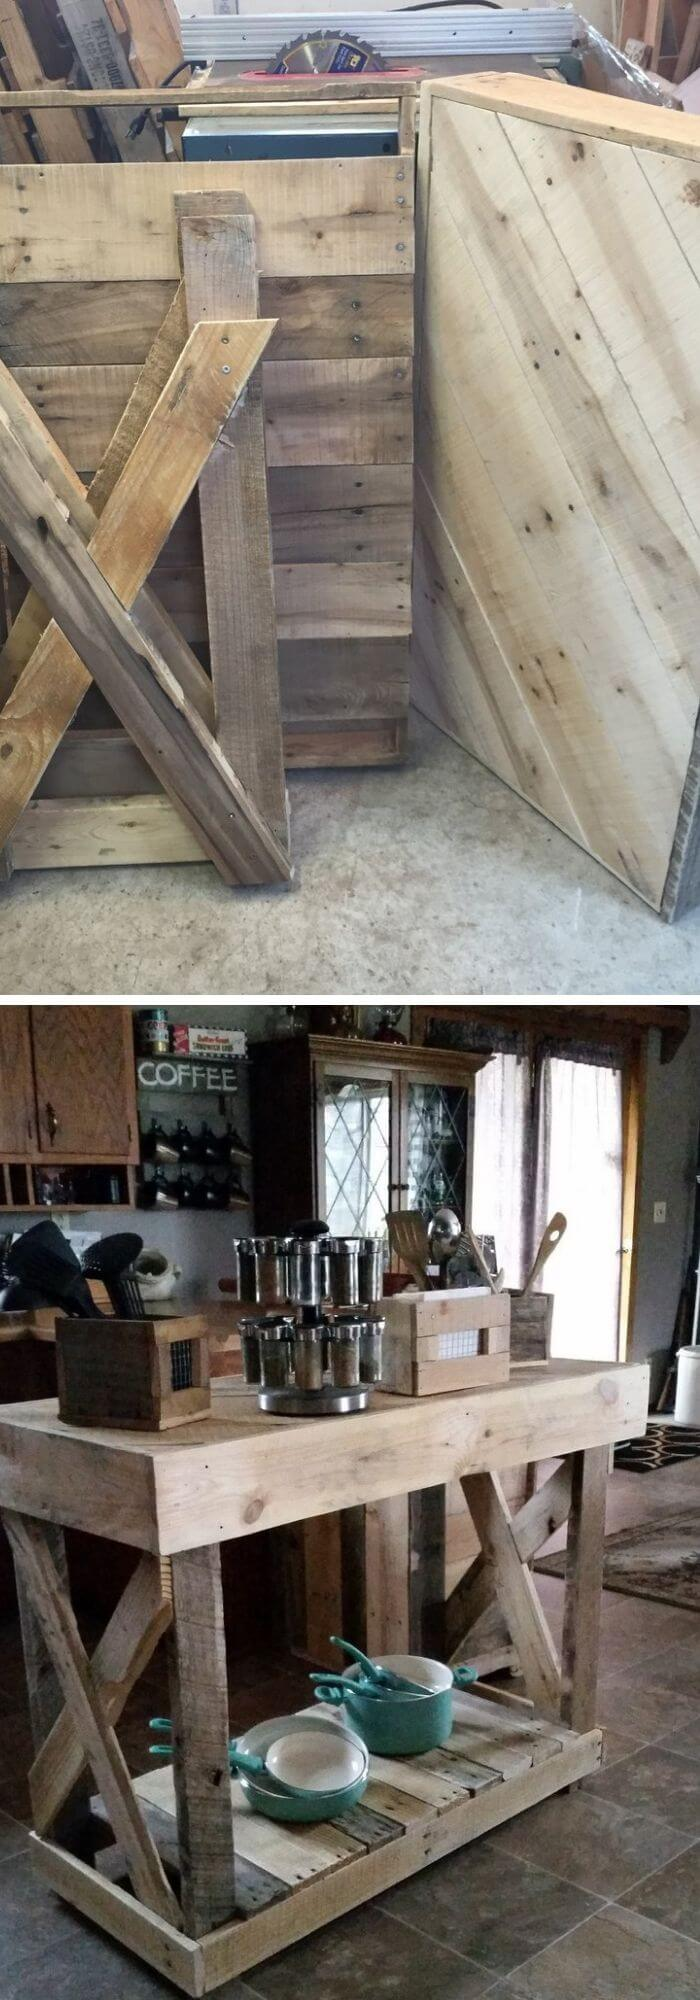 Kitchen Decor Projects With Reclaimed Wood Kitchen island from wooden pallets